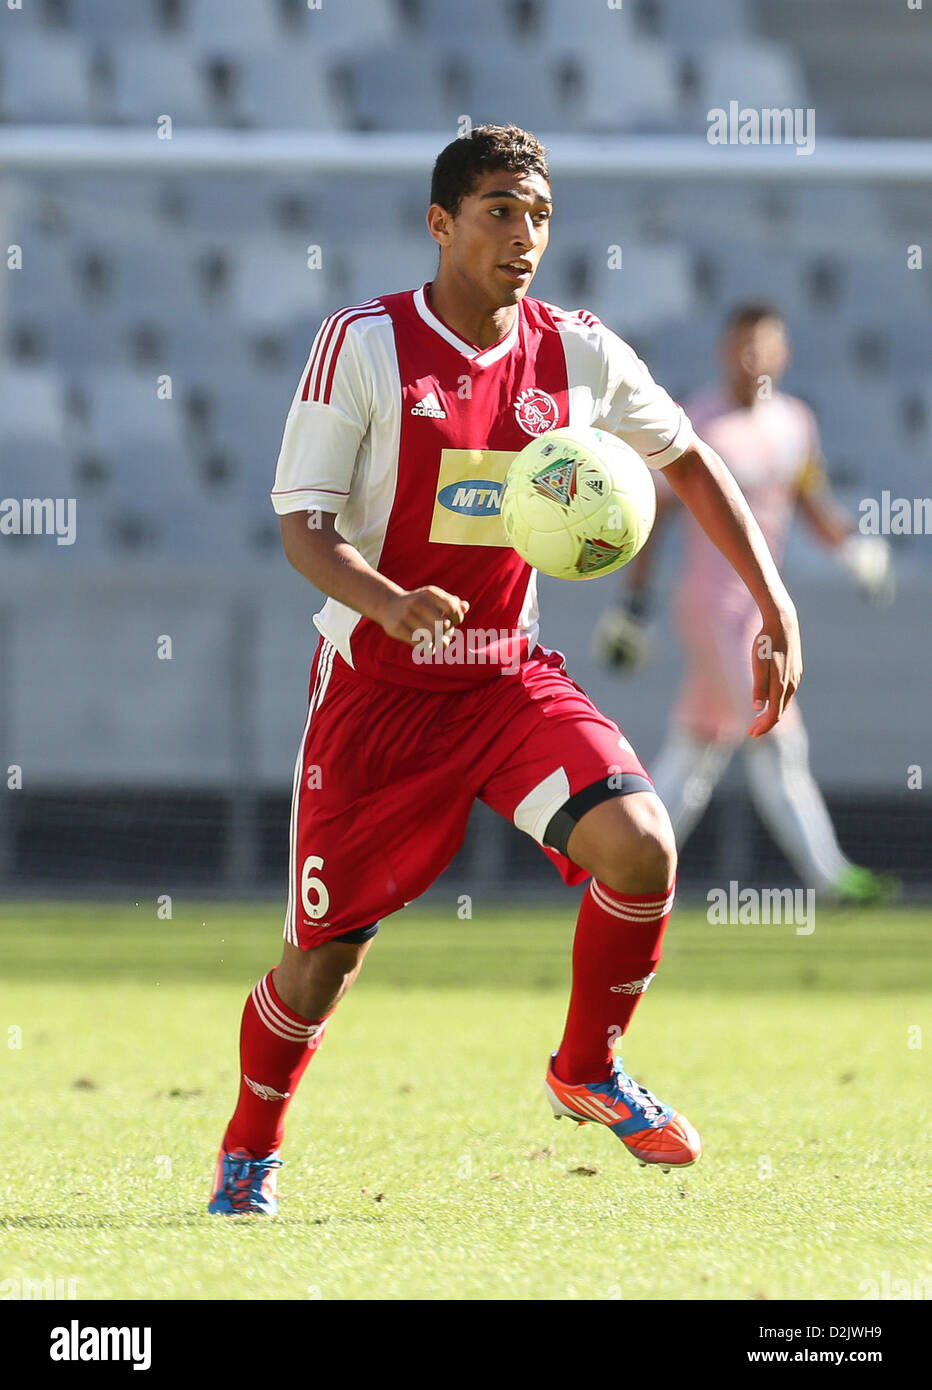 CAPE TOWN, South Africa - Saturday 26 January 2013, Travis Graham of Ajax Cape Town during the soccer/football match - Stock Image